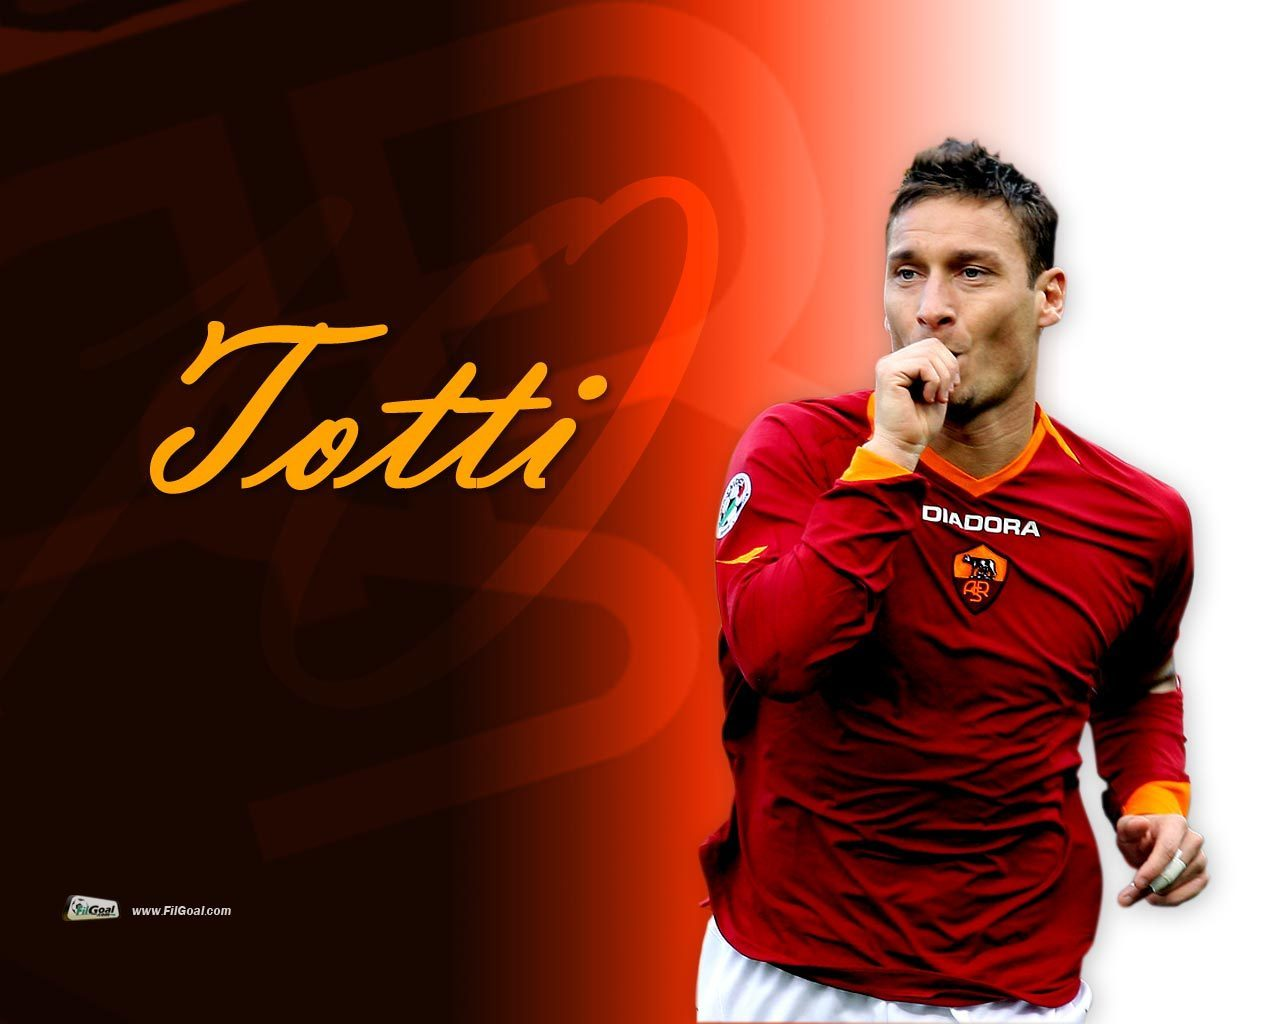 Francesco Totti As Roma Wallpapers Sports Images As Roma Hd Wallpaper